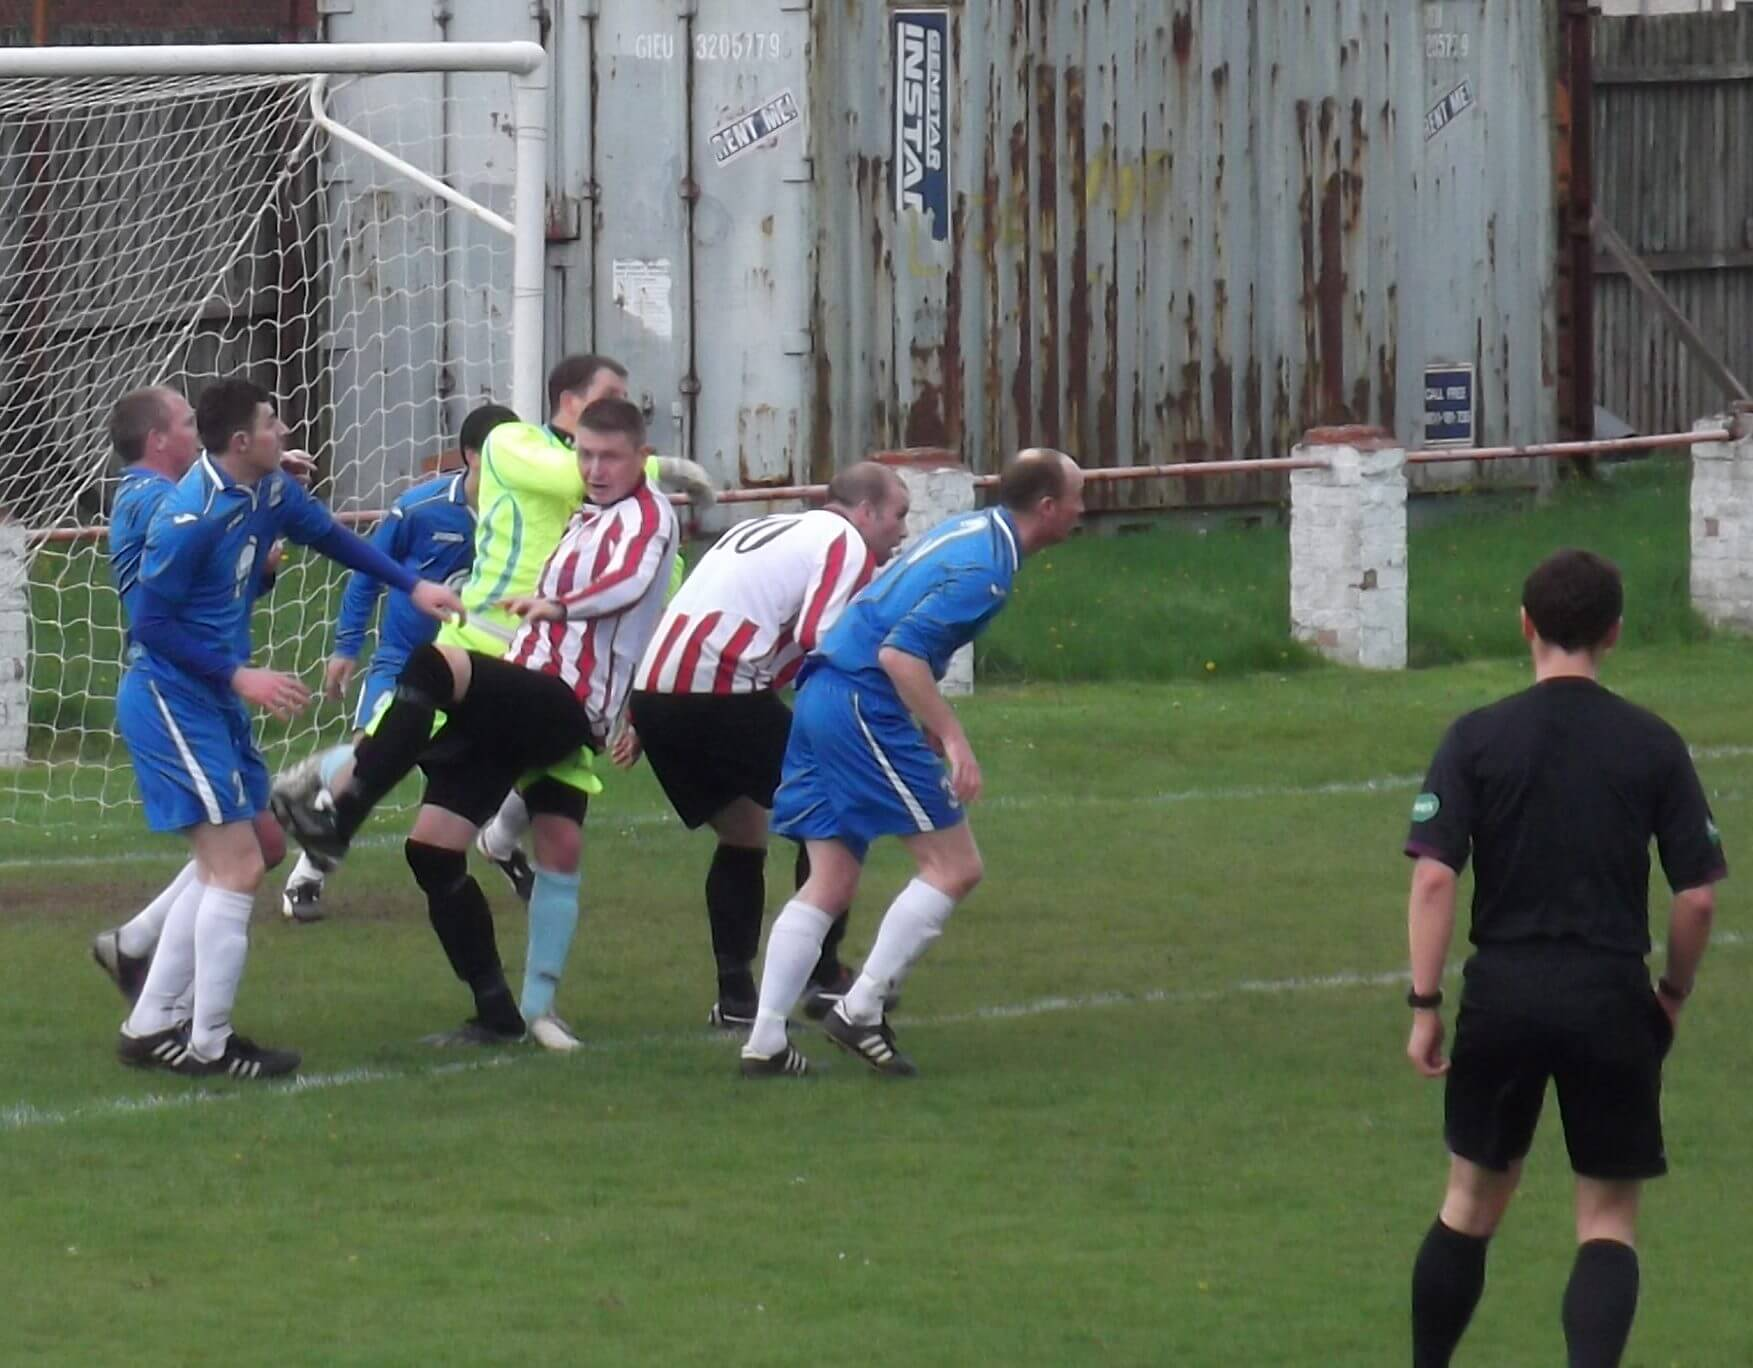 Thistle's Neil Schoneville gets taken out by the Bens keeper.